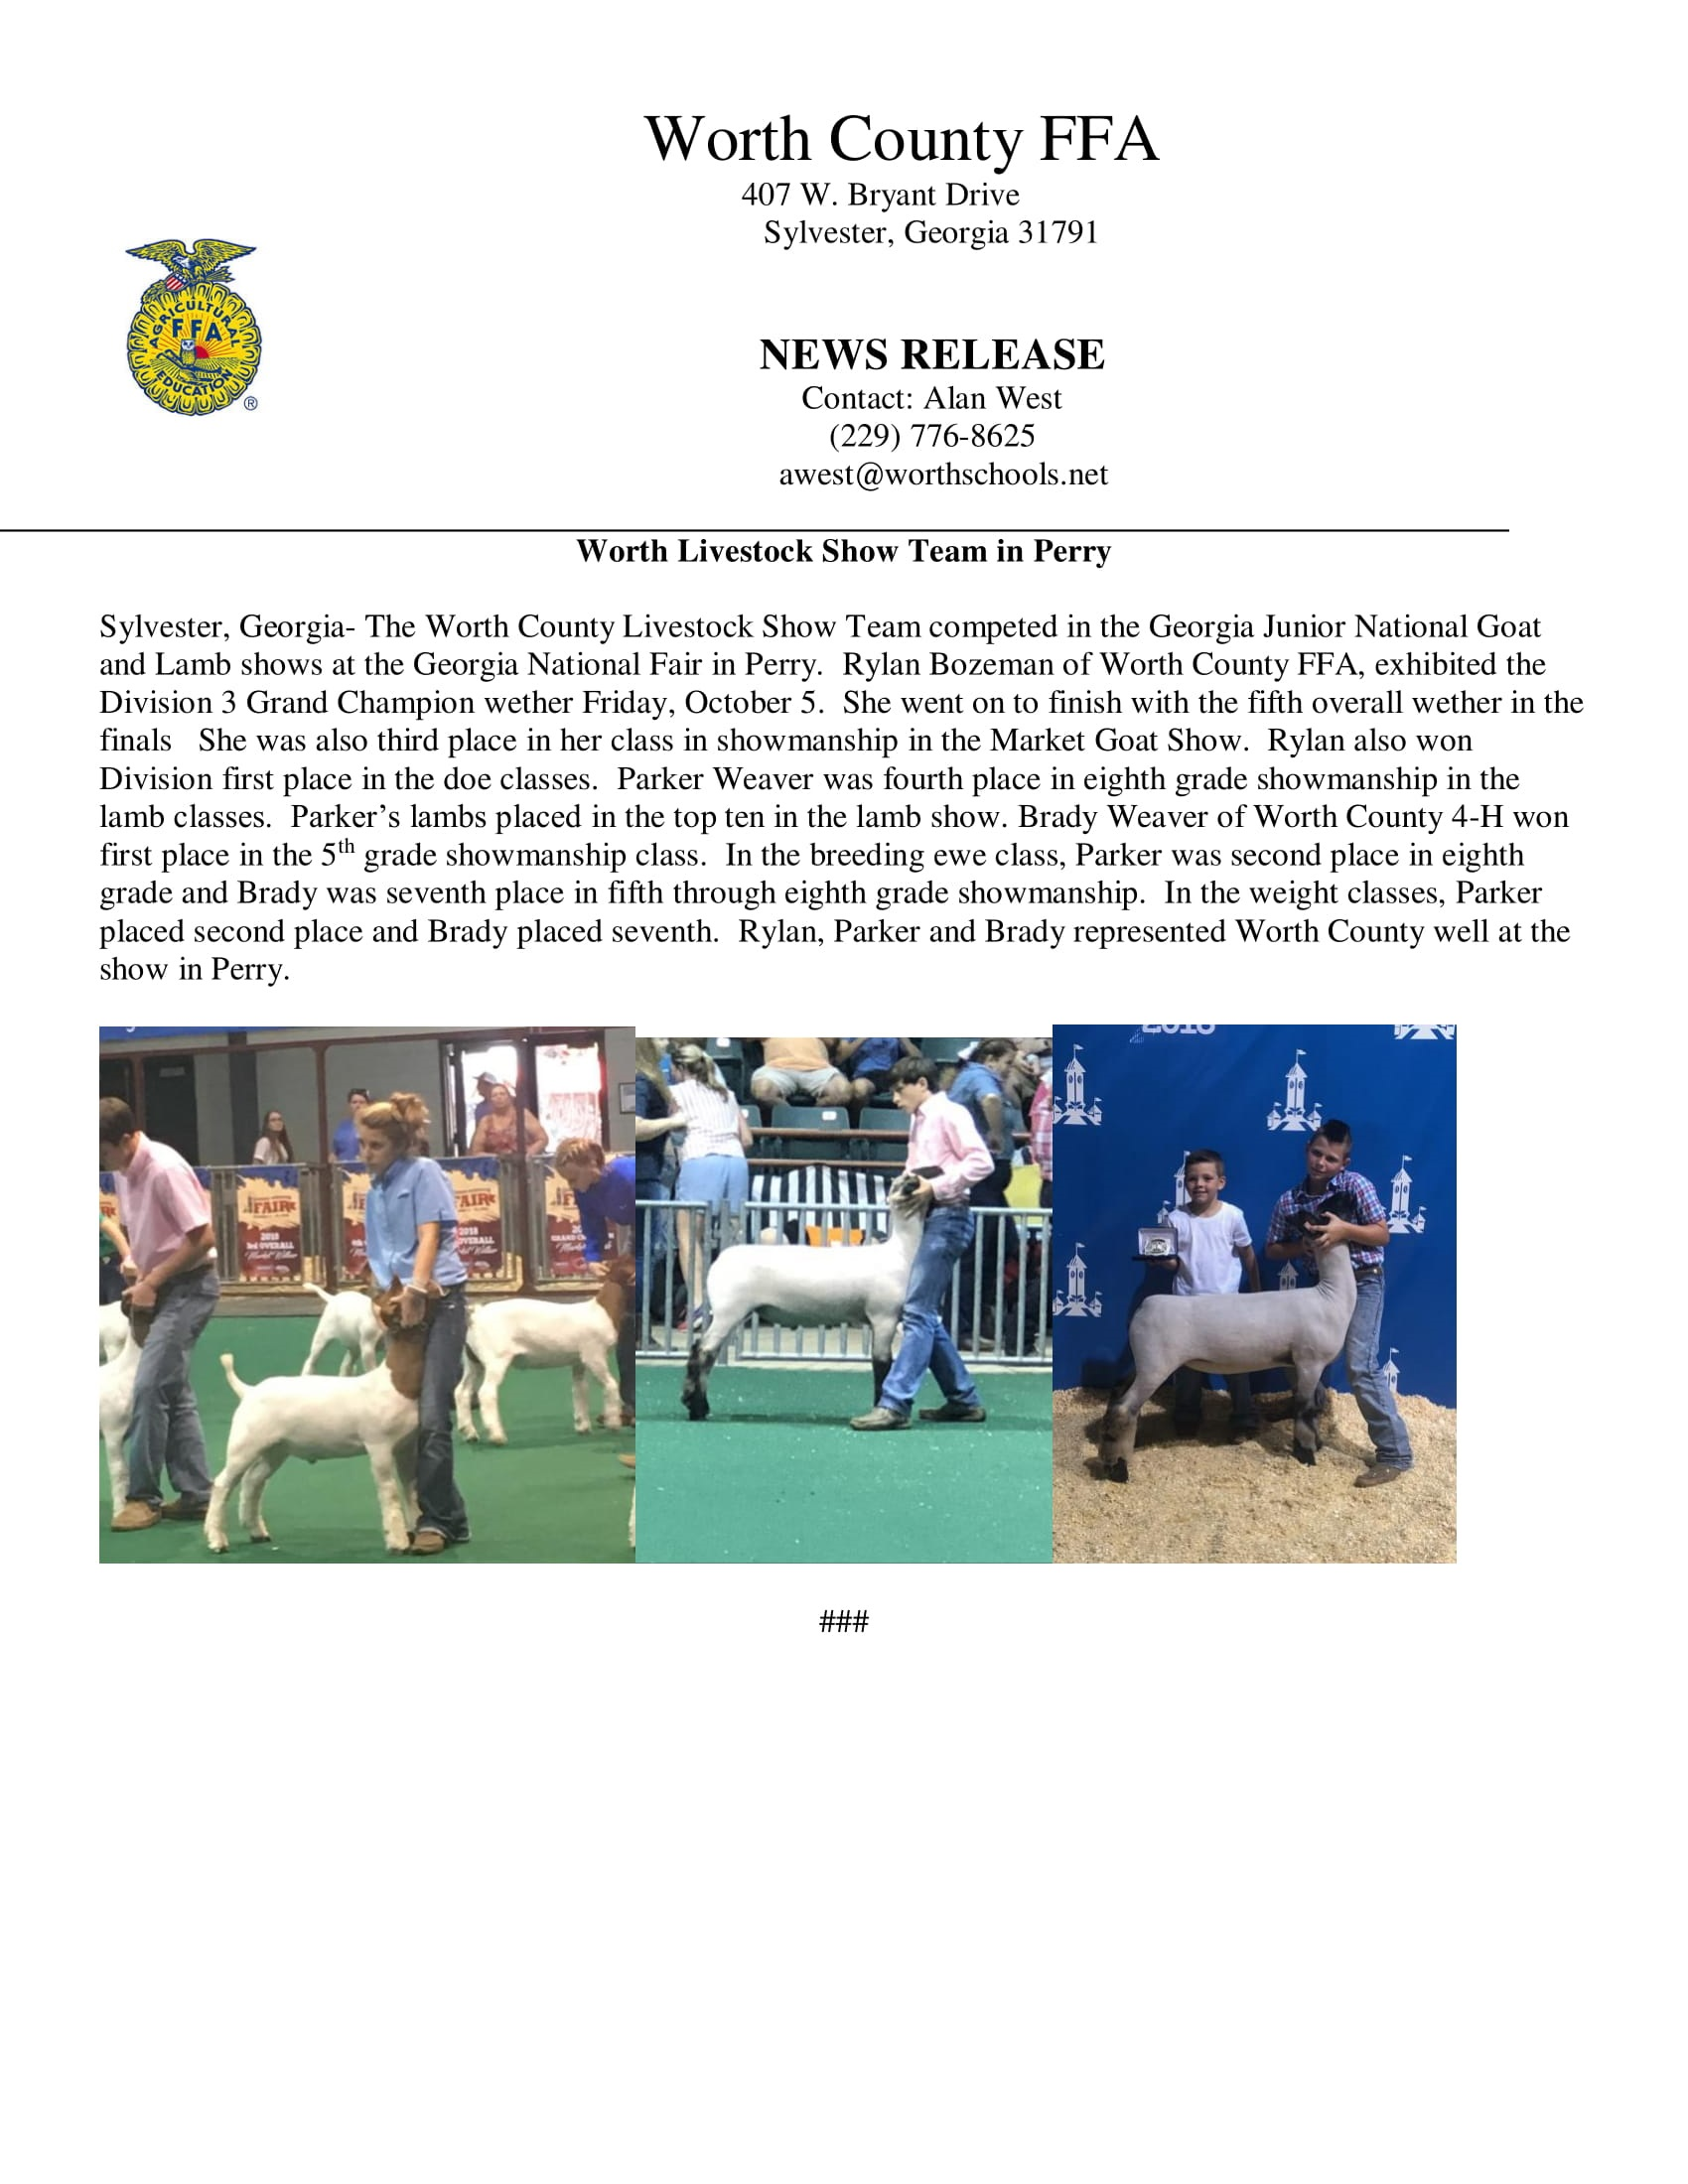 Worth County FFA Press Release